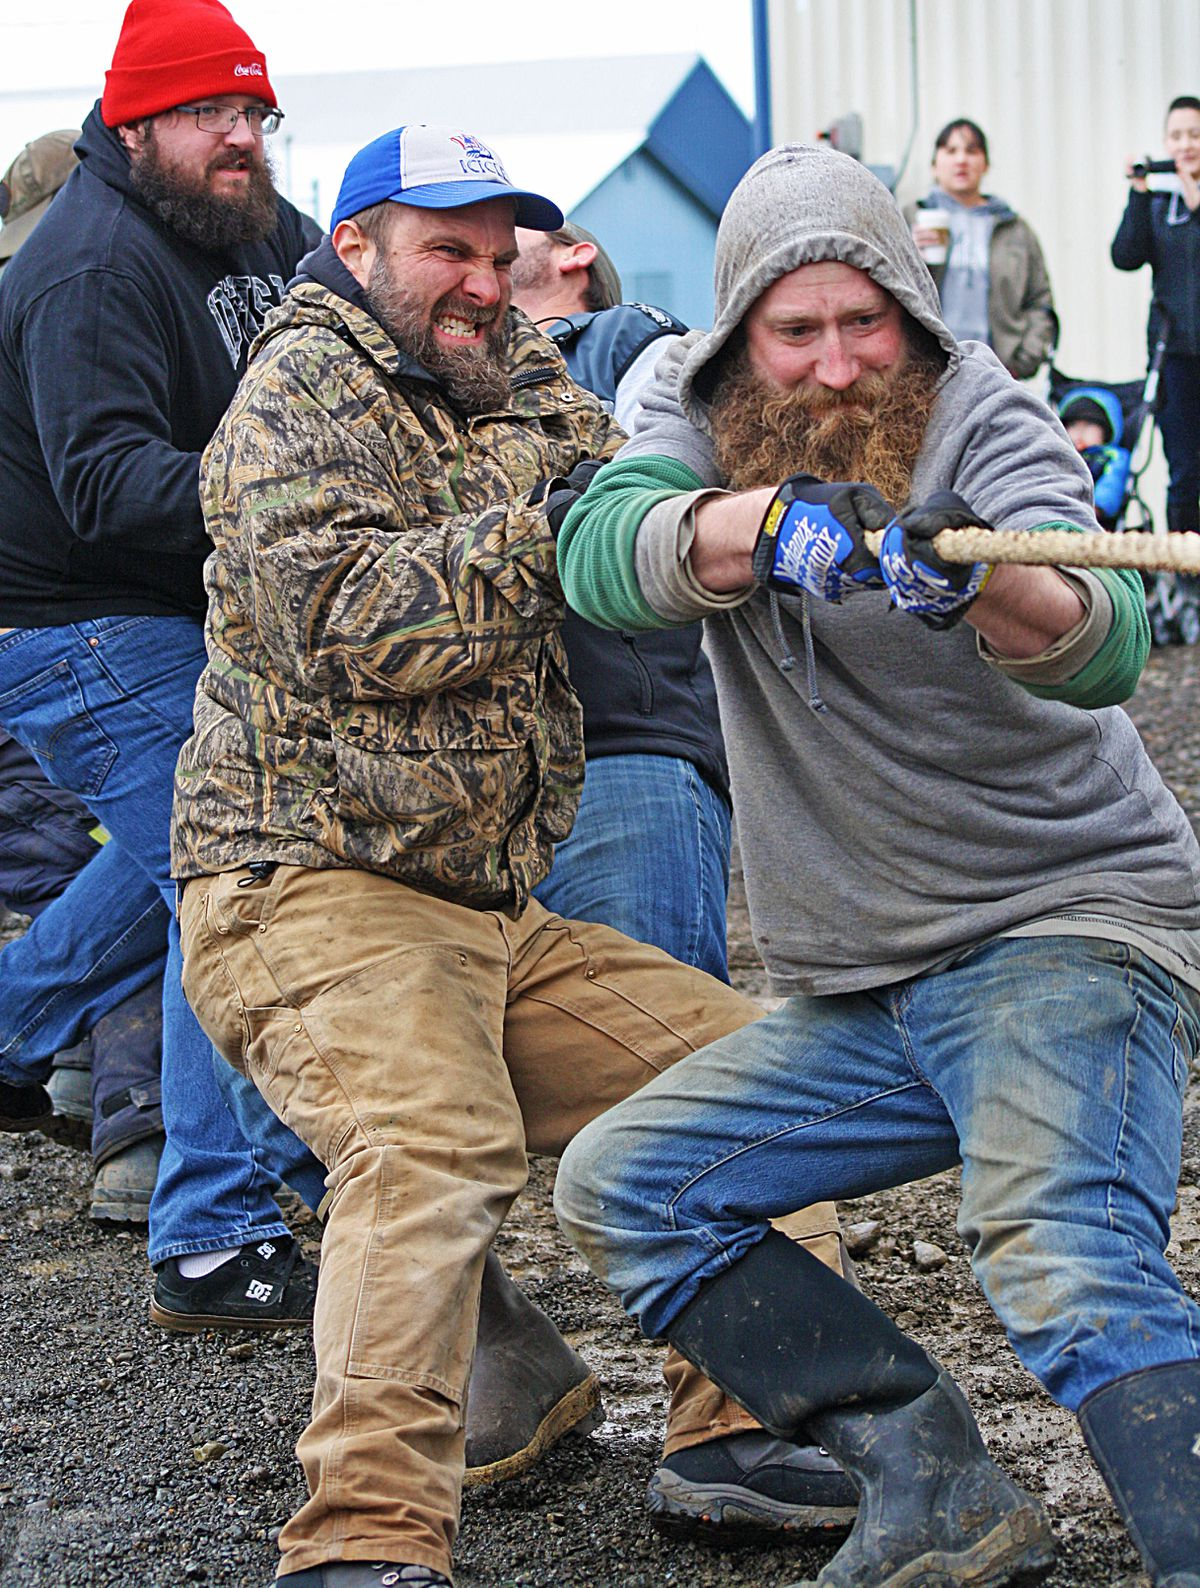 From left to right, Tyler Bishop, Clint Reigh and Tyler McWilliams show the strain in the men's tug-of-war competition during Beaver Roundup in February 2015.(Clark Fair)